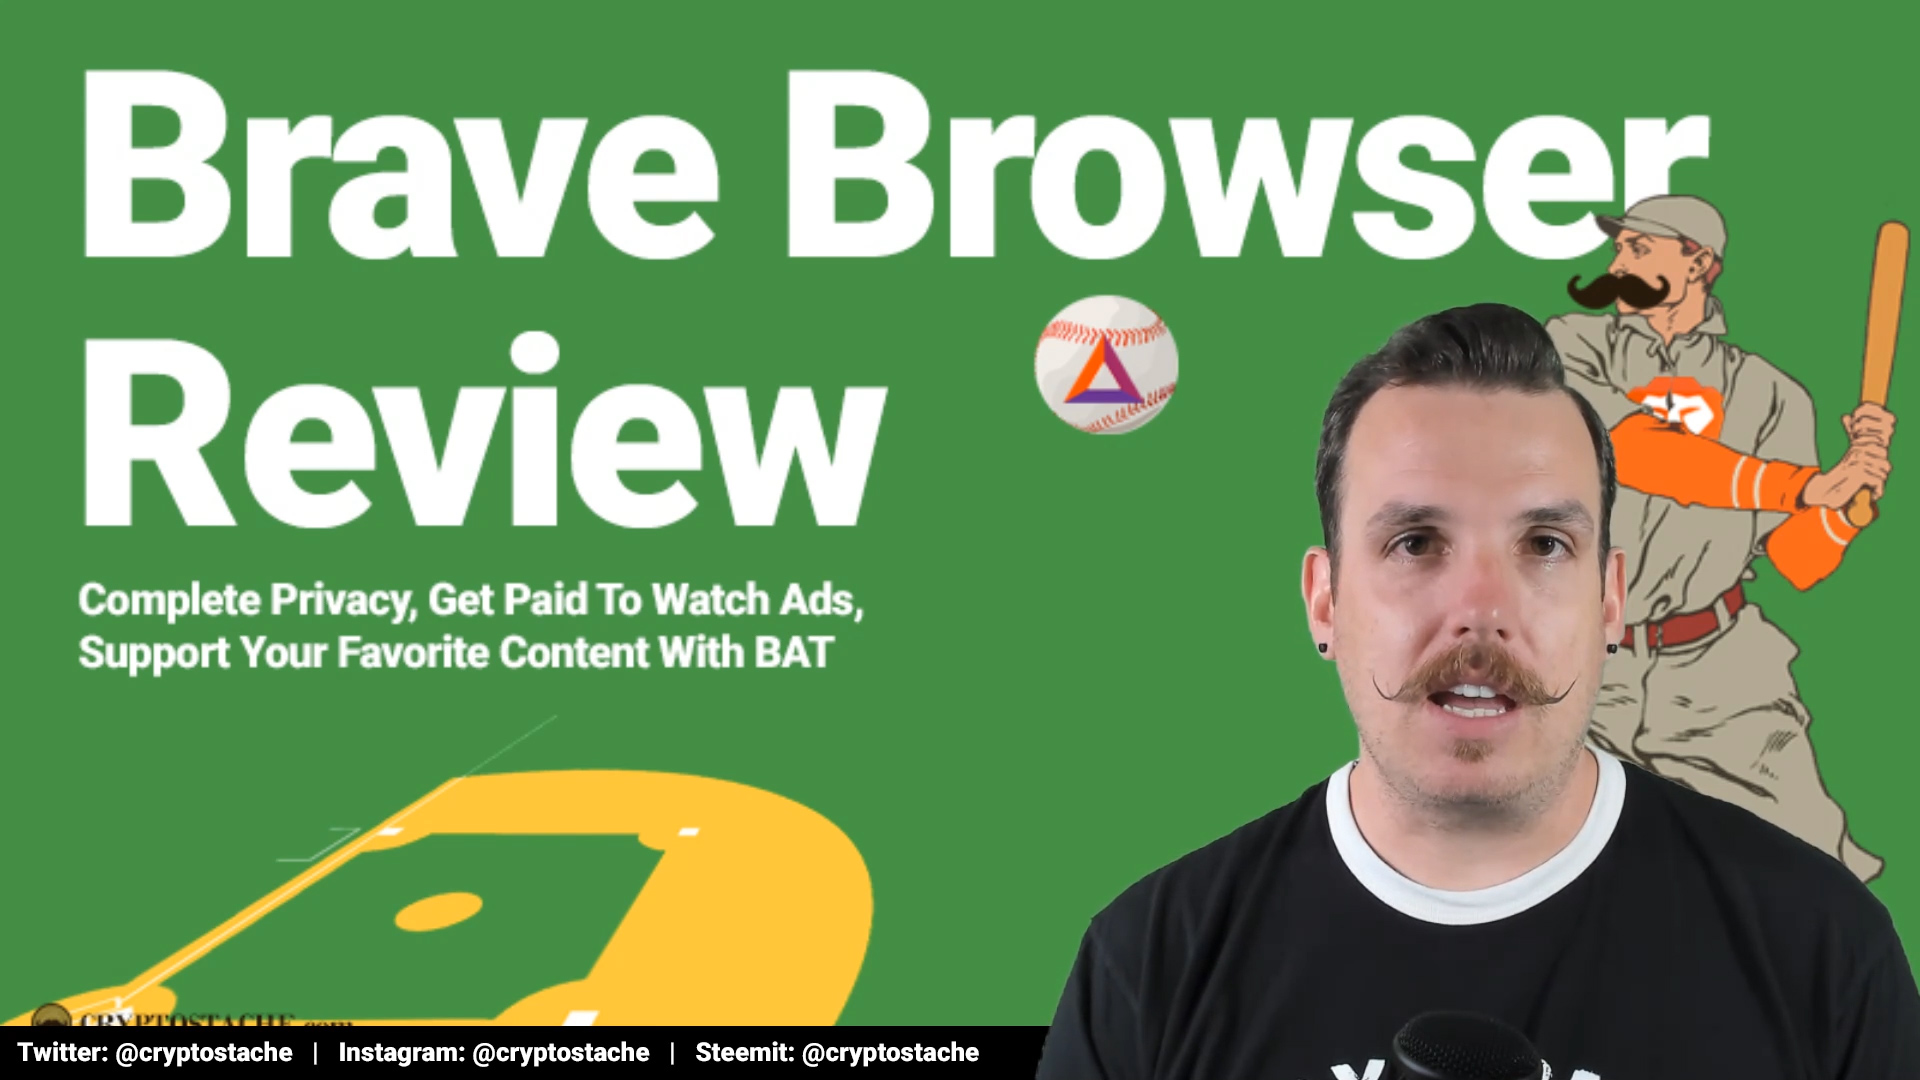 brave browser uses bat to pay you to watch ads support your